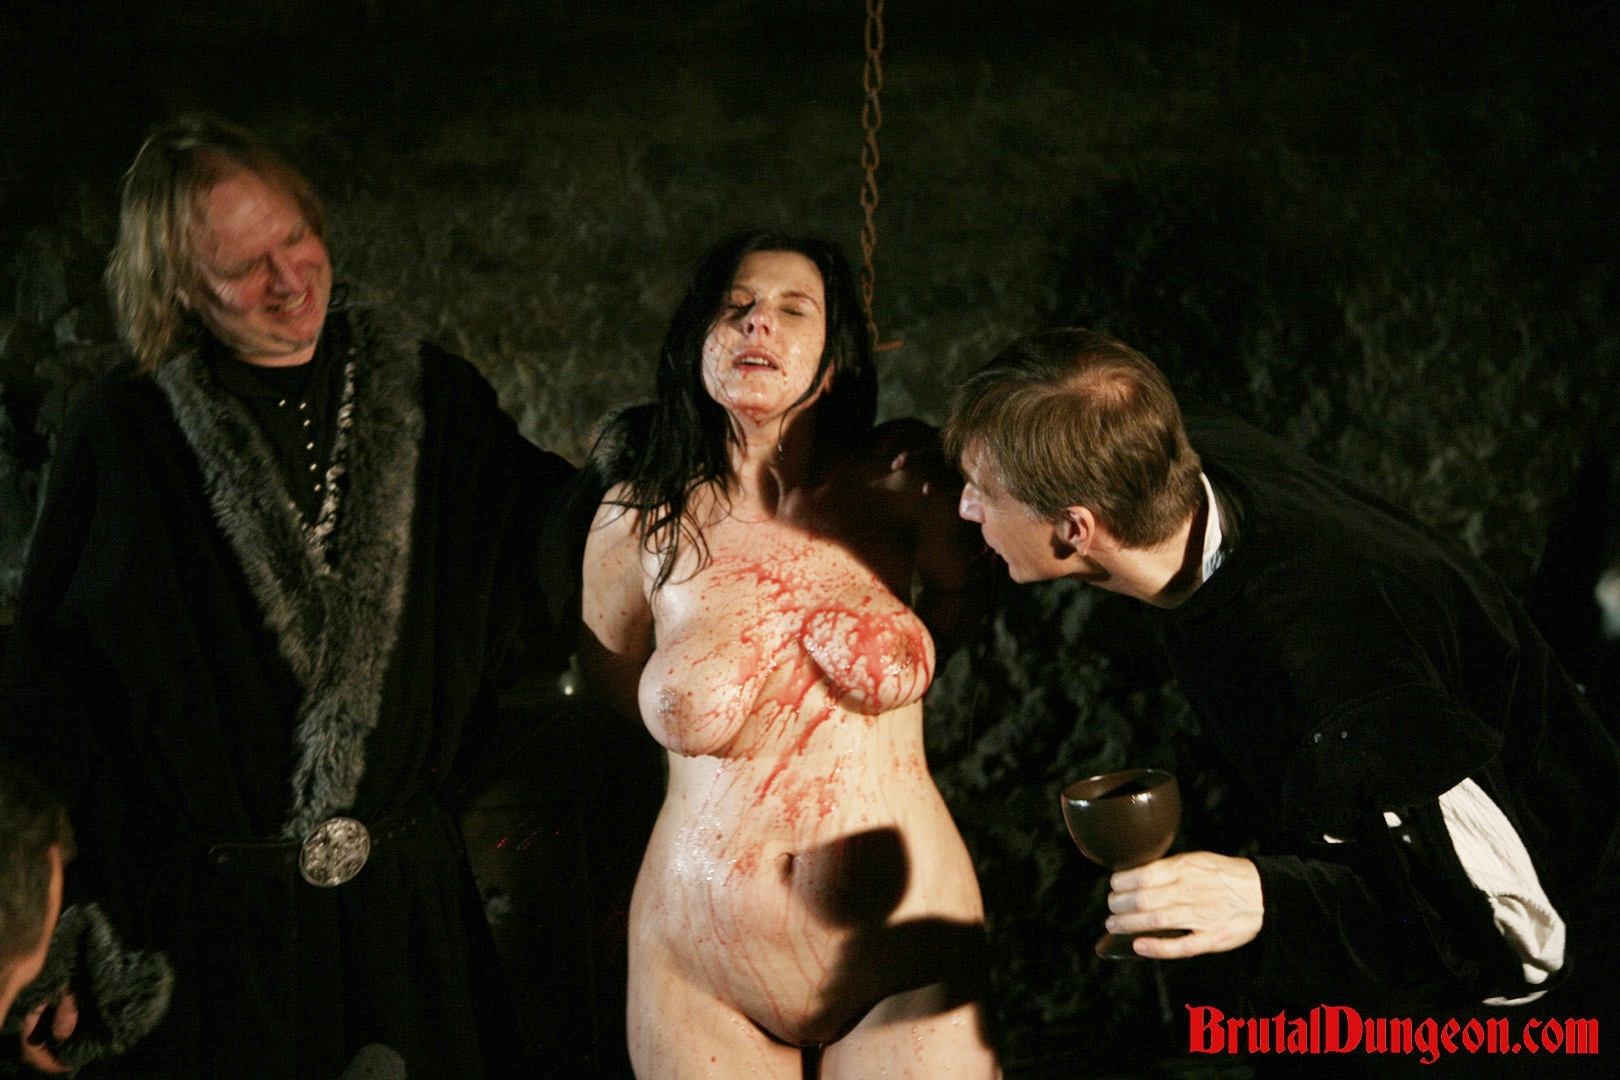 Brunette gypsy for bdsm gang bang. Gypsy, a lusty brunette fortune teller, must endure imprisonment, BDSM gang bang, domination, rope bondage and suspension, spanking, slapping, humiliation, fingering, breast, nipple and cunt torment. She's so pleasant at her job that she saw this punishment coming.